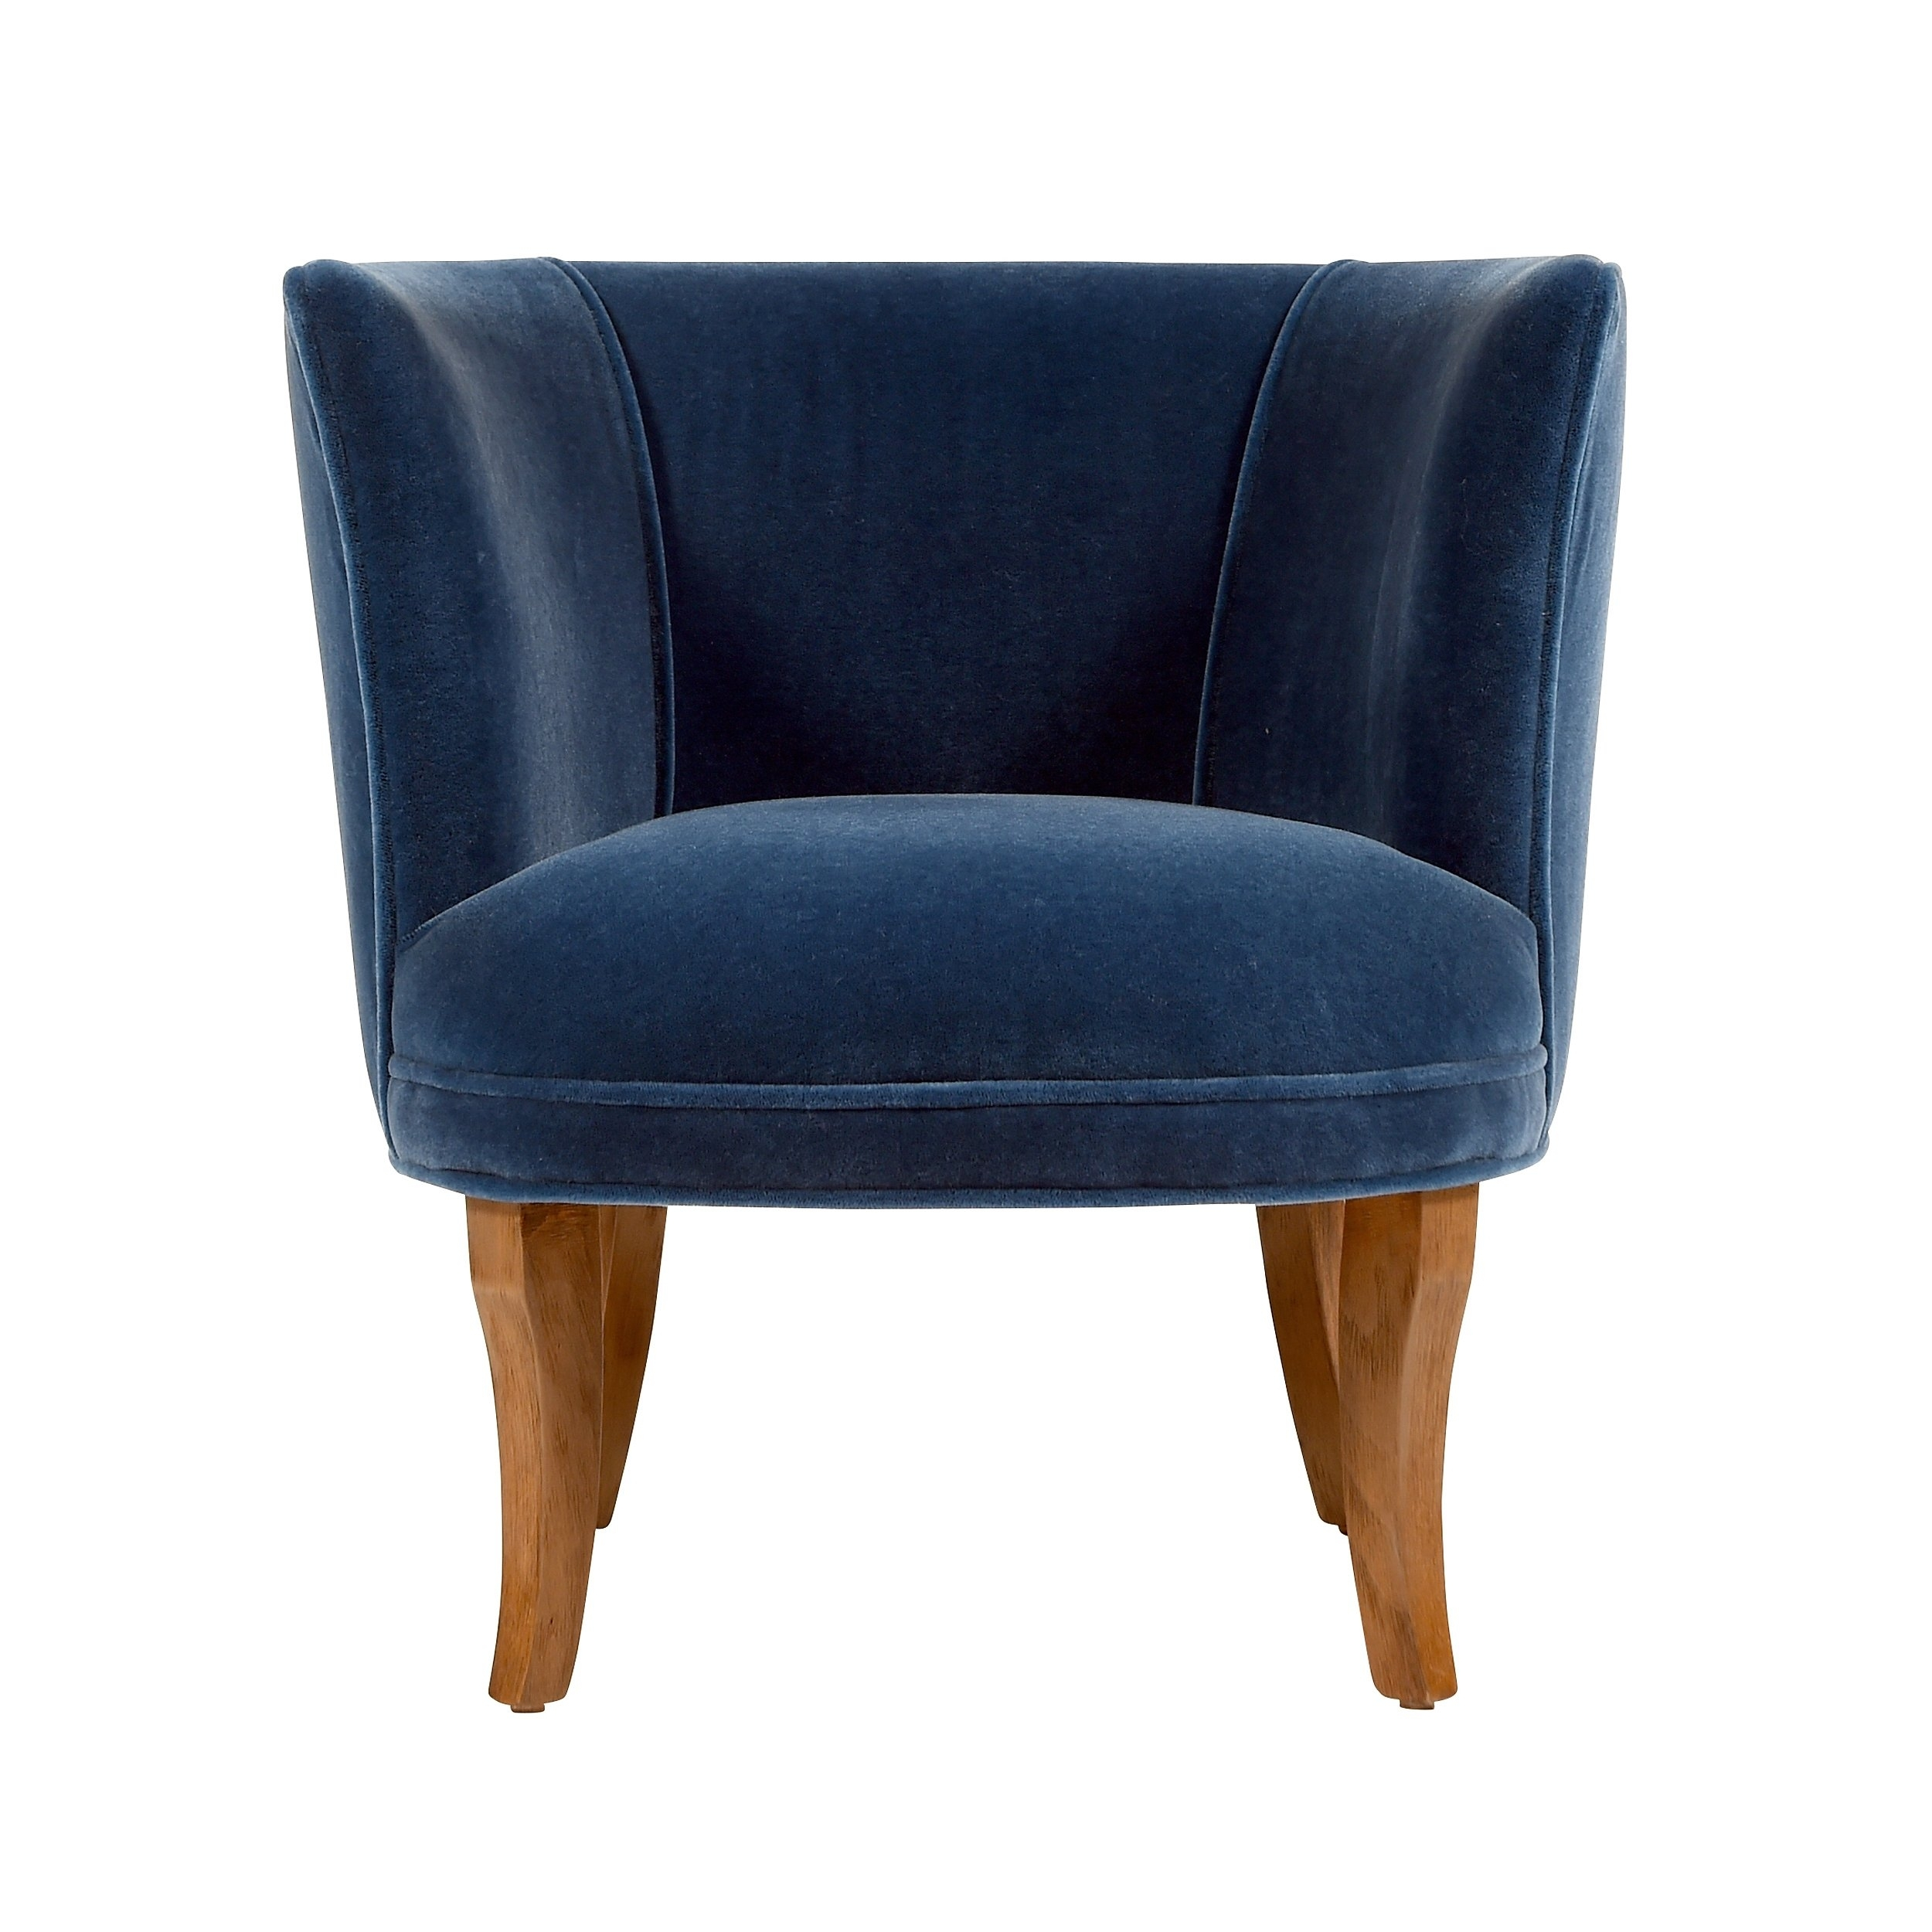 Jaxon Upholstered Side Chairs Intended For Most Current Shop Jaxon Bella Navy Blue Velvet Upholstered Armchair – Free (#11 of 20)